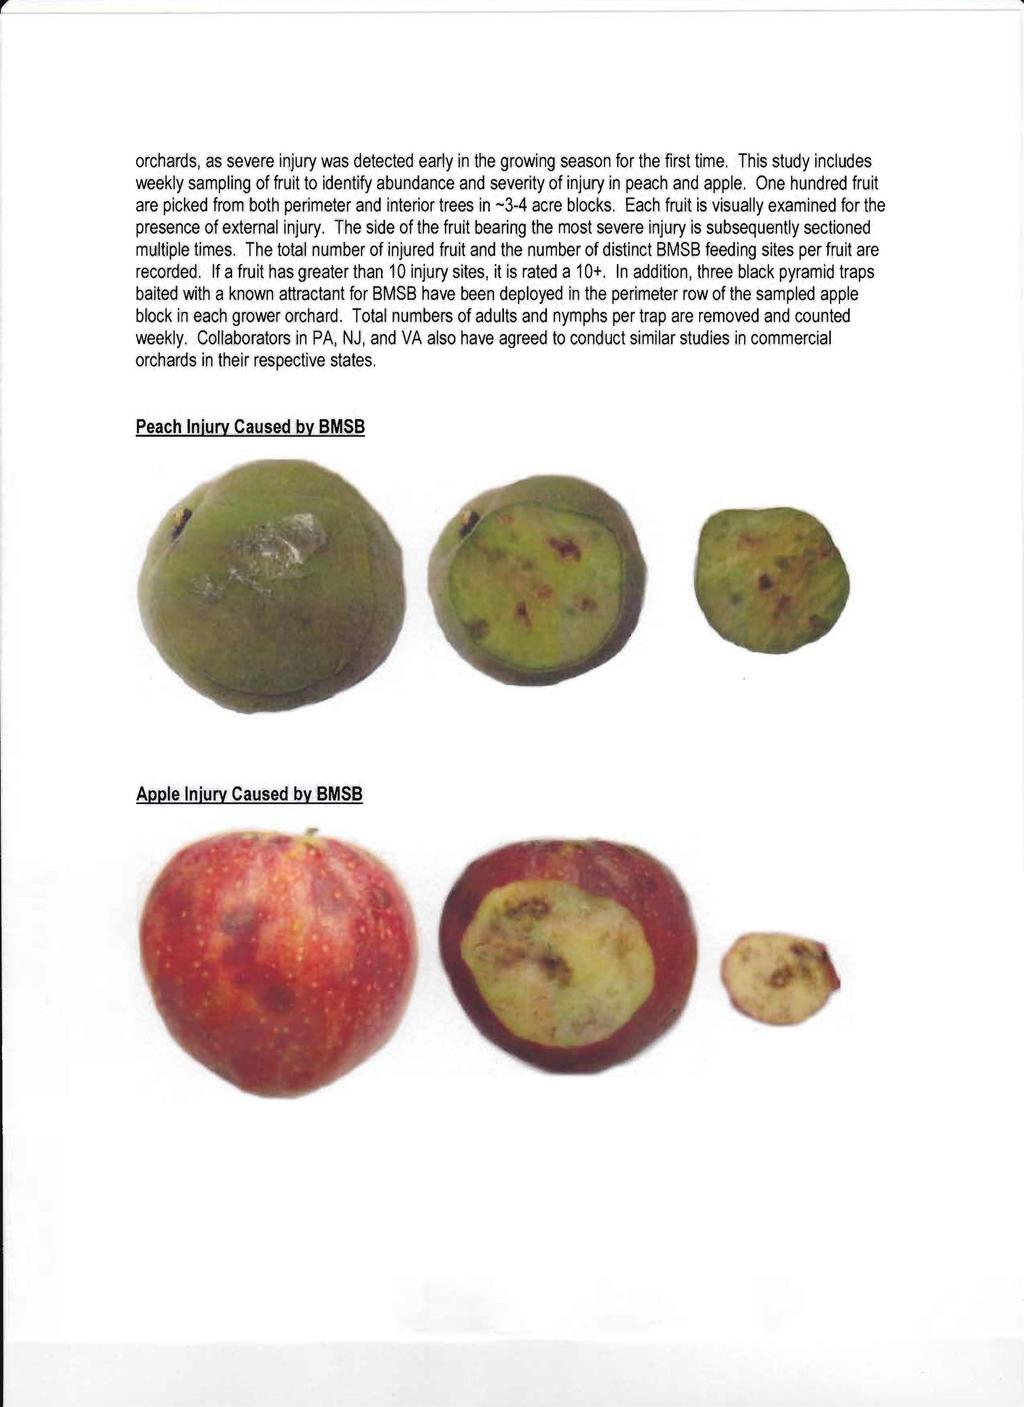 orchards, as severe injury was detected early in the growing season for the first time. This study includes weekly sampling of fruit to identify abundance and severity of injury in peach and apple.